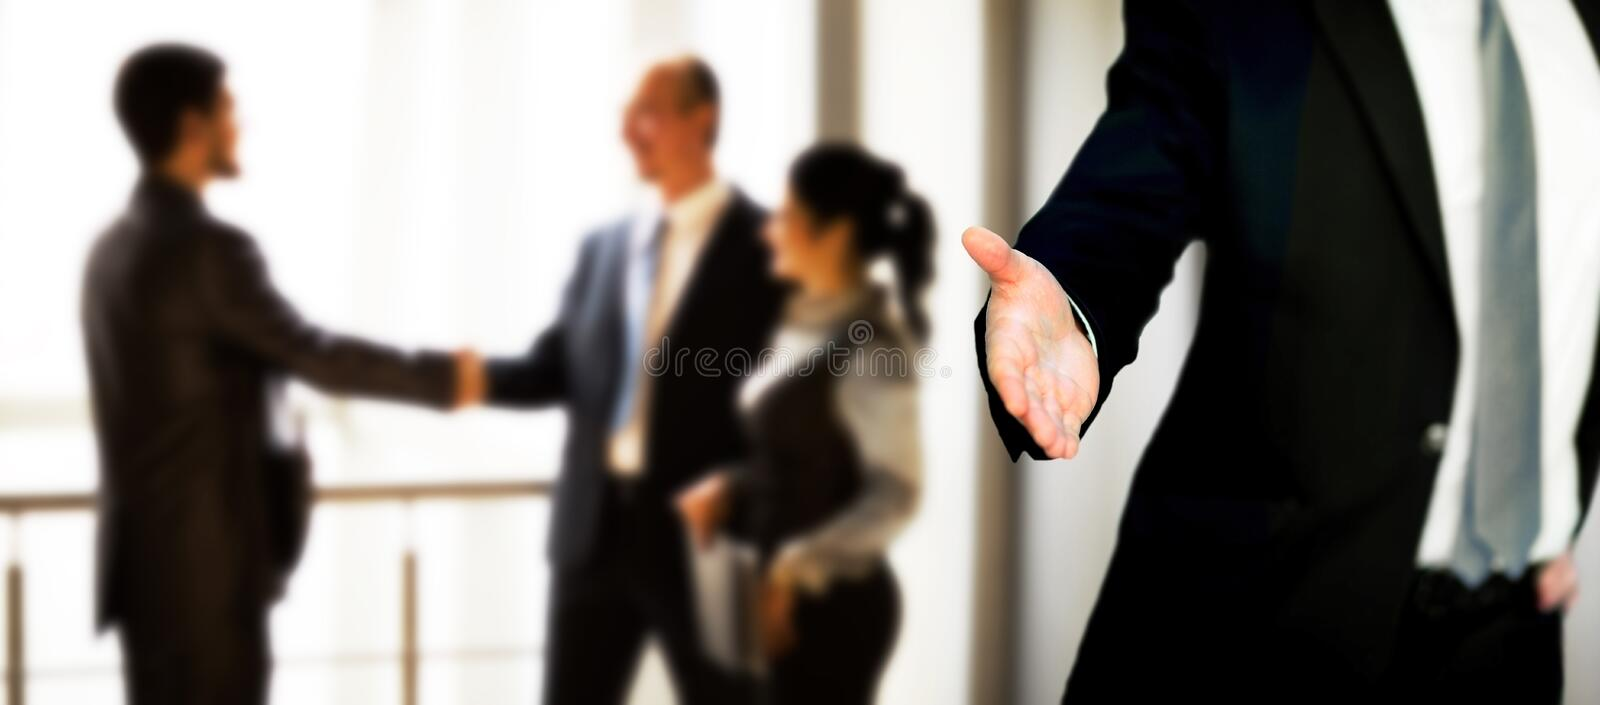 A business man with an open hand. Ready to seal a deal royalty free stock photo